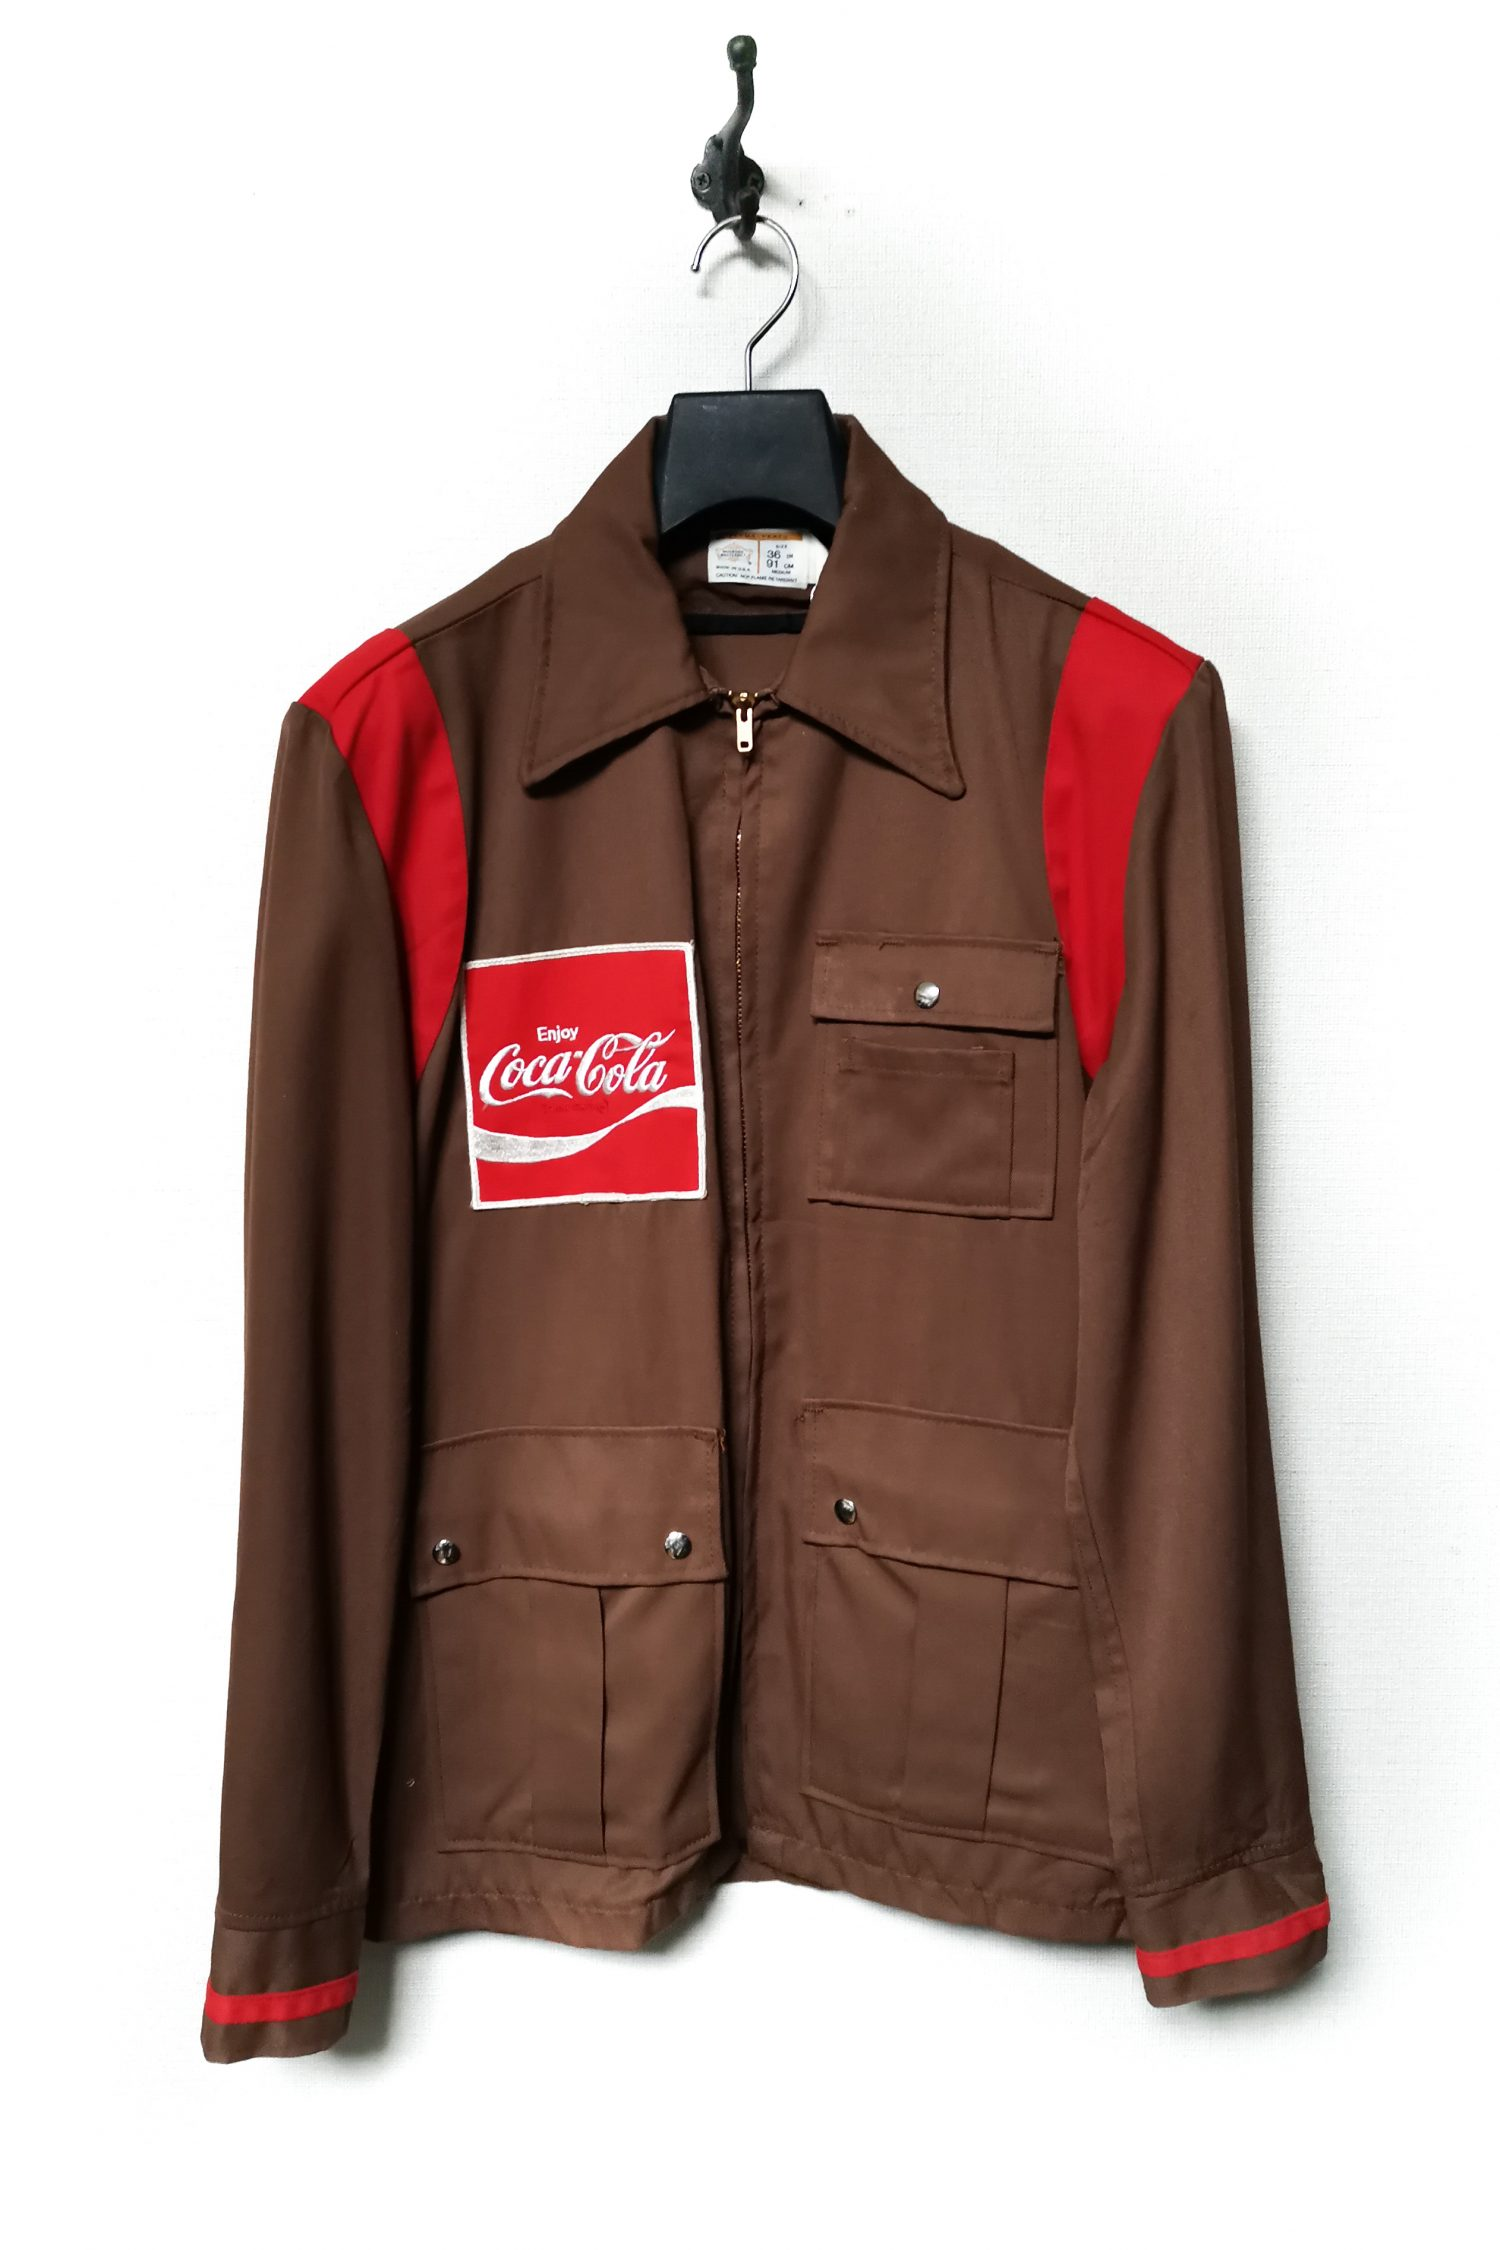 USA Vintage Coca-Uniform-9